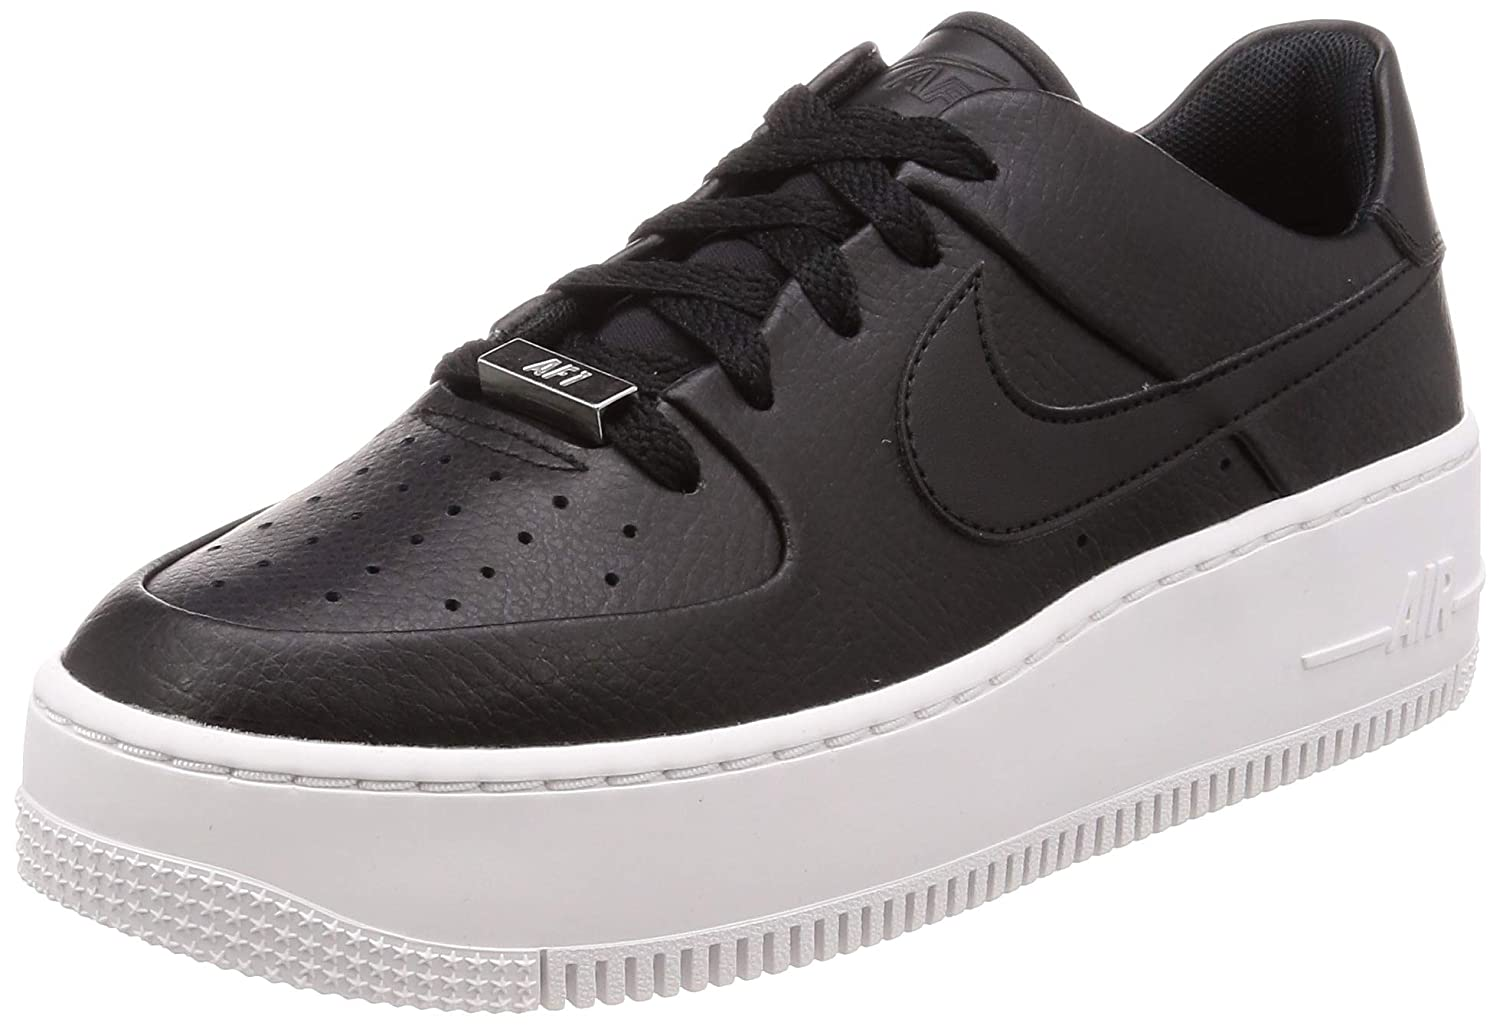 outlet store 37fa7 50134 Amazon.com | Nike Air Force 1 Sage Low Women's Shoes Black ...